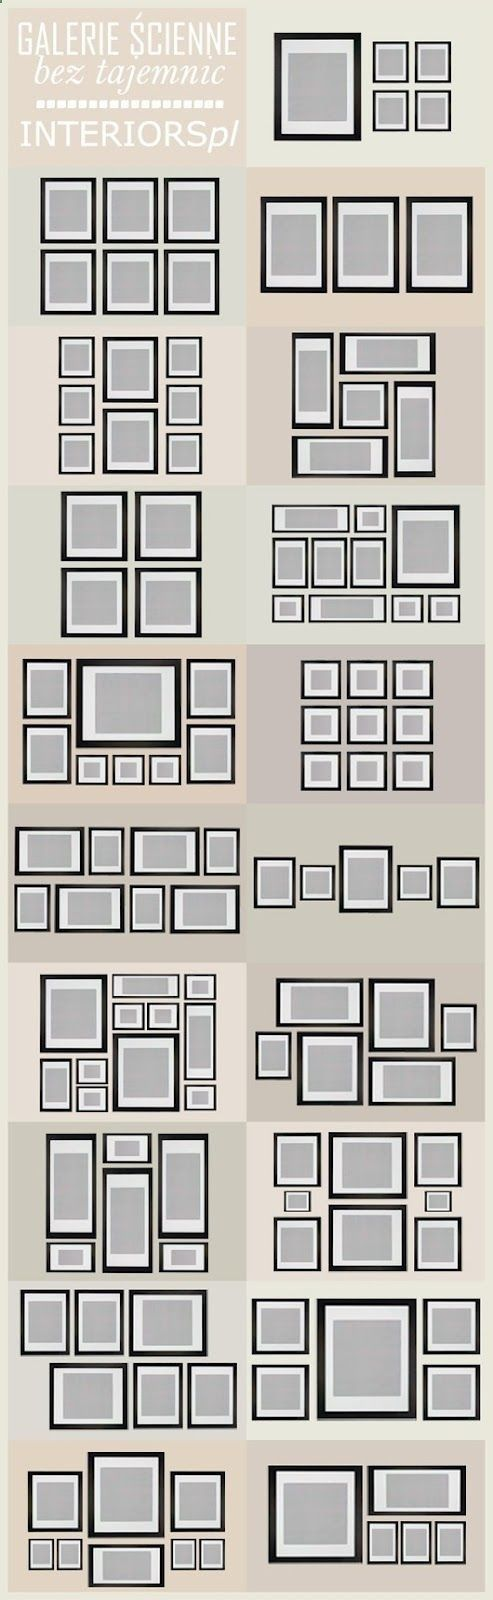 DIY: Gallery Wall Arrangement Ideas - plus many other guides, such as yardage guides for upholstered furniture, window treatment  terminology guides, area rug size guides, etc. This is an excellent resource!!!